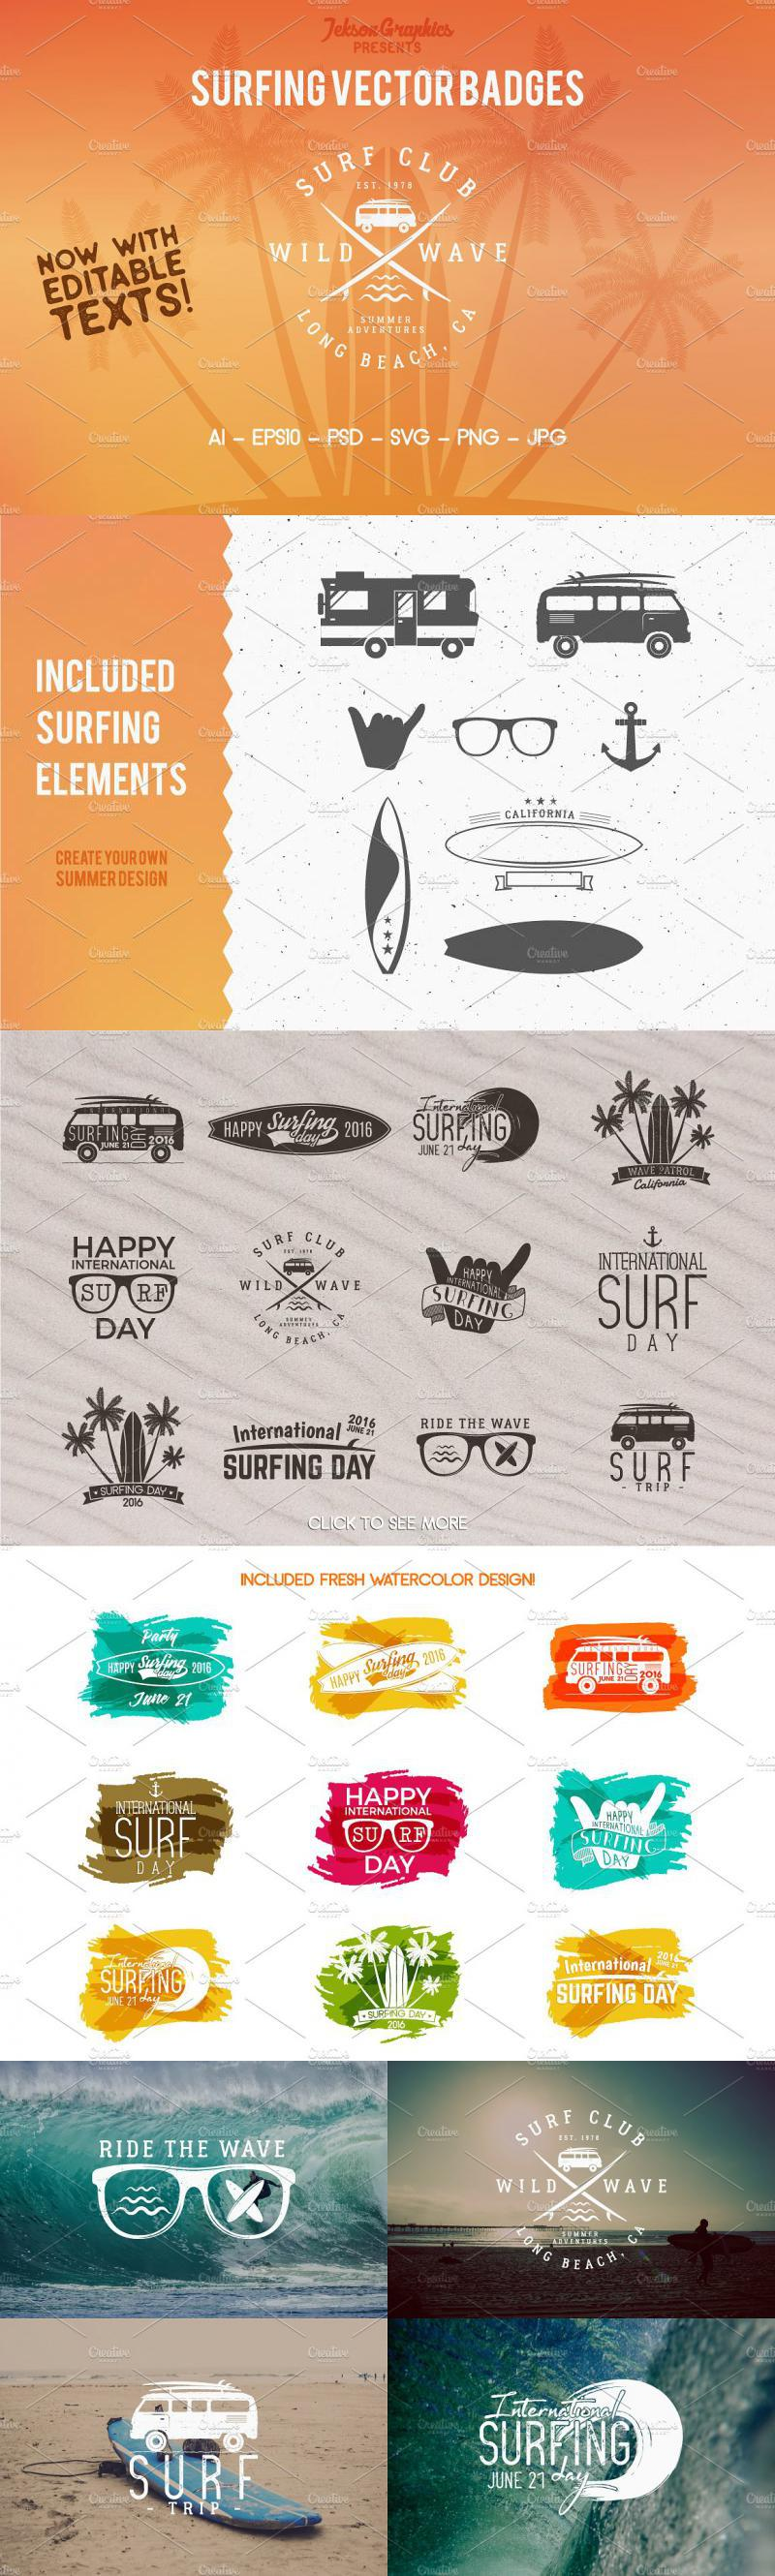 Summer Surfing Logos & Elements Vol1